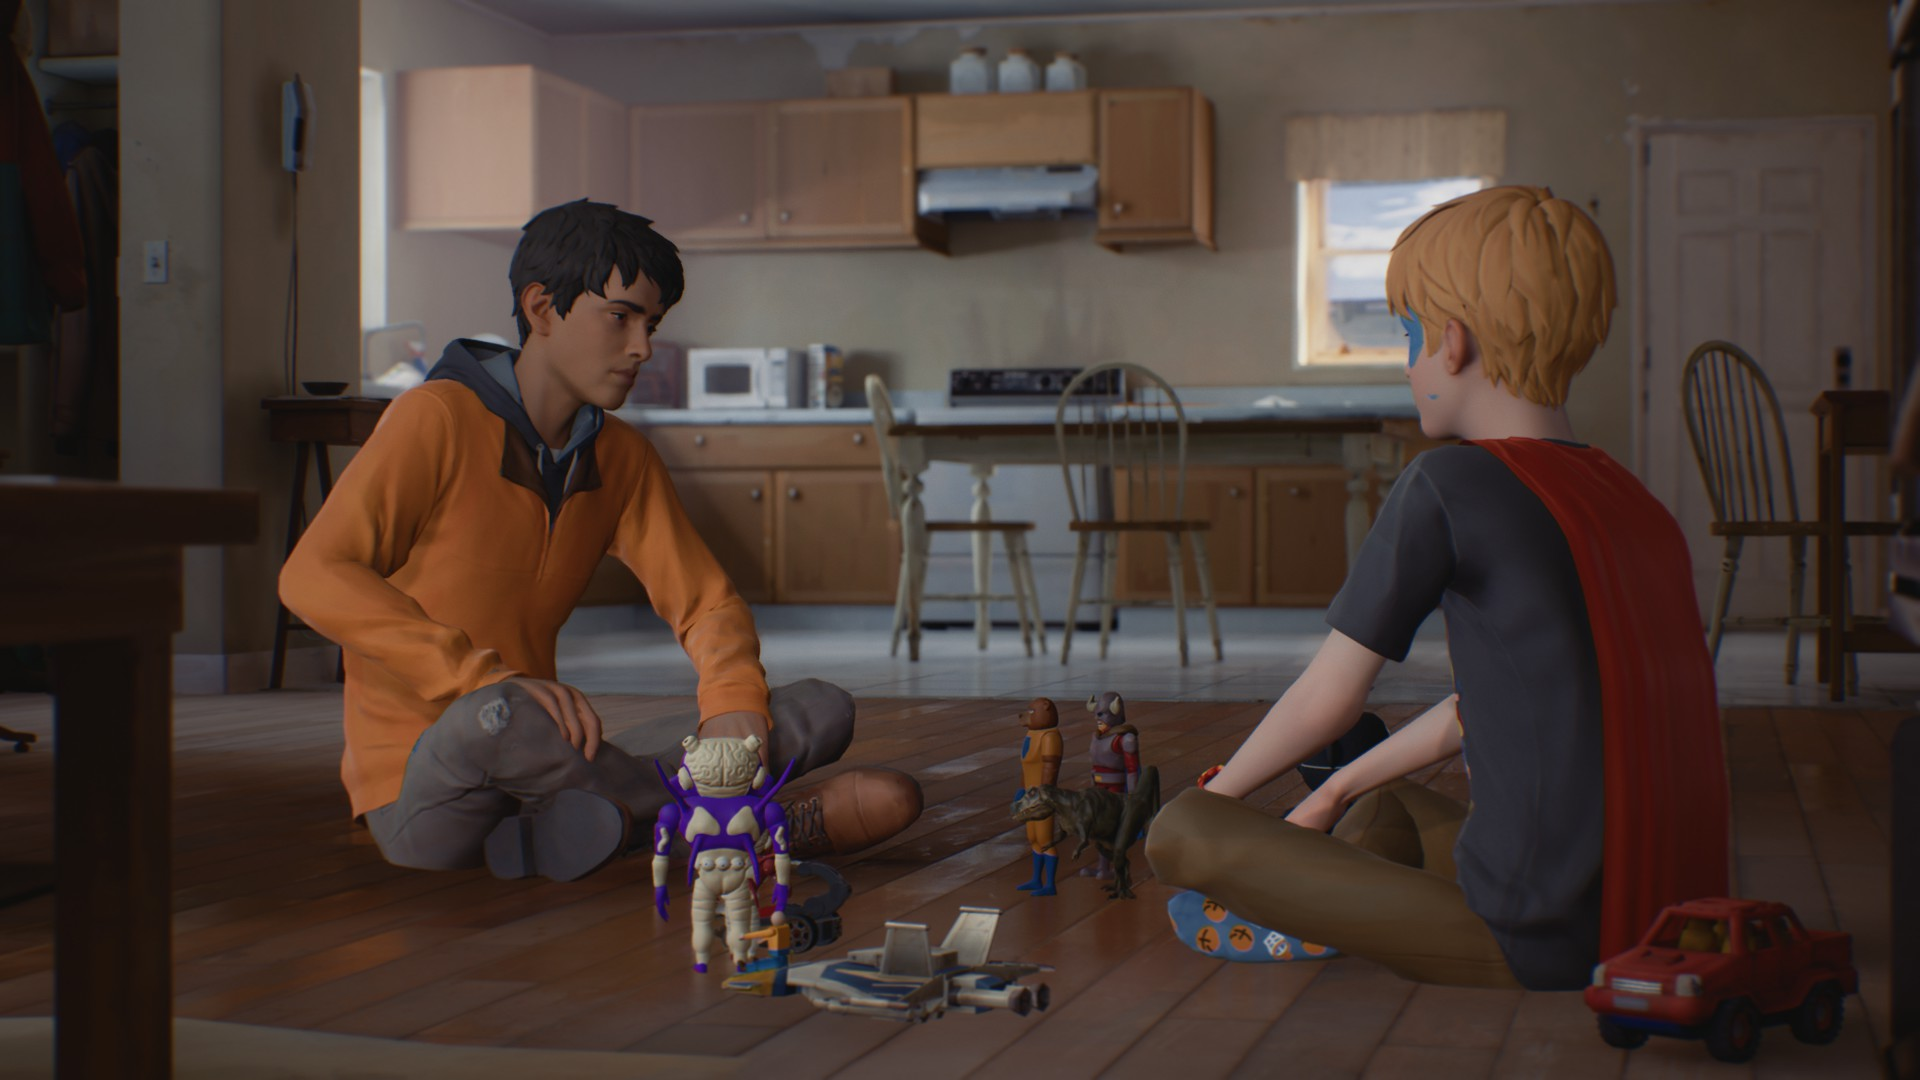 Captain Spirit dans Life is Strange 2 Episode 2